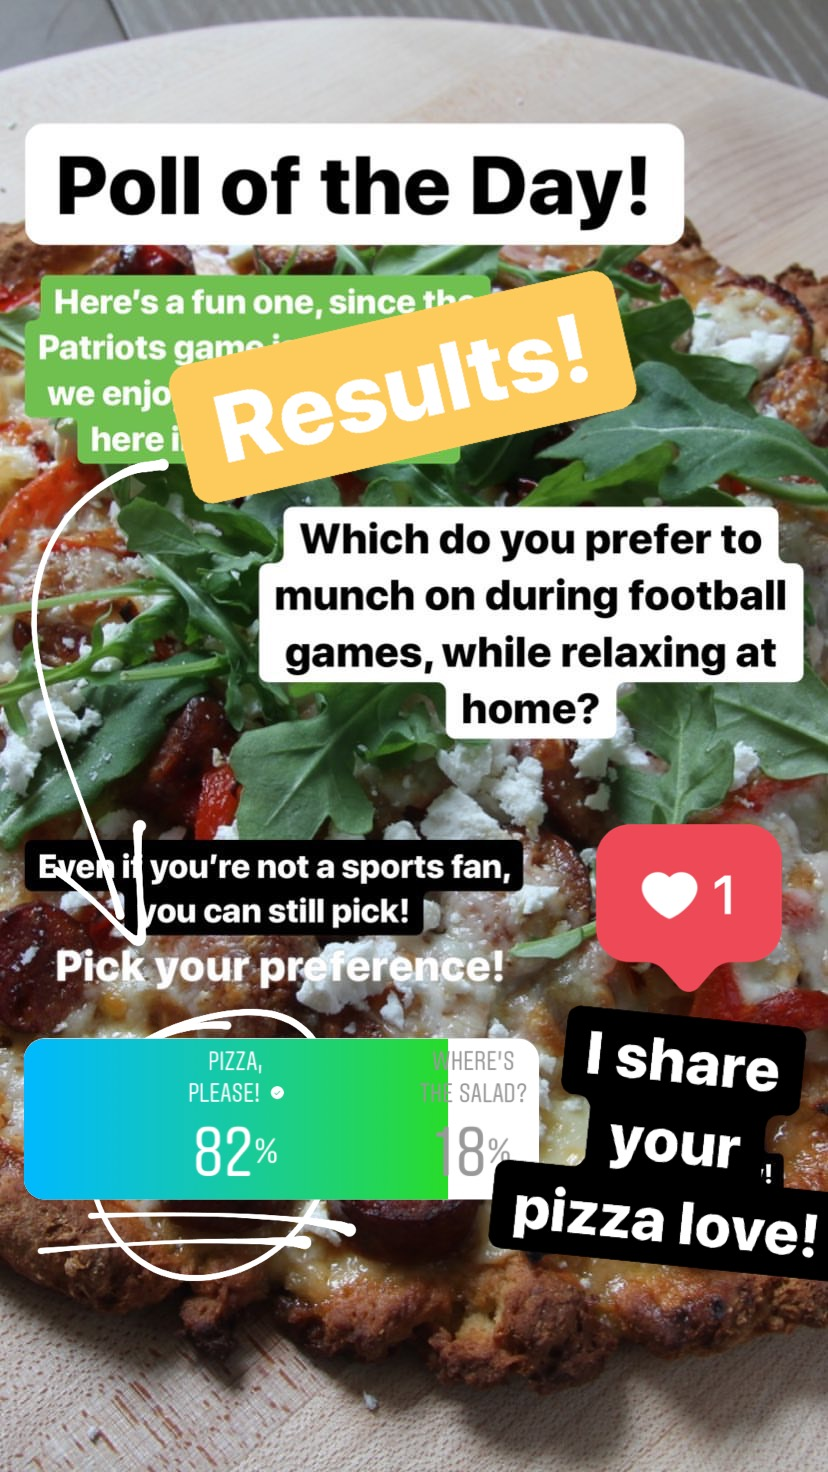 Was there any surprise here? Pizza won in a landslide and while I appreciate the thought of having salad while watching sports, it just doesn't seem to fit my own sports-watching mindset. Kudos to those who chose greens! There are many other options here, too: besides pizza, who wouldn't love to settle in for a game with a gorgeous platter of nachos? Extra guacamole, please! We also love a great artichoke dip, especially that one we featured a while ago with four kinds of cheese! Amazing! :)